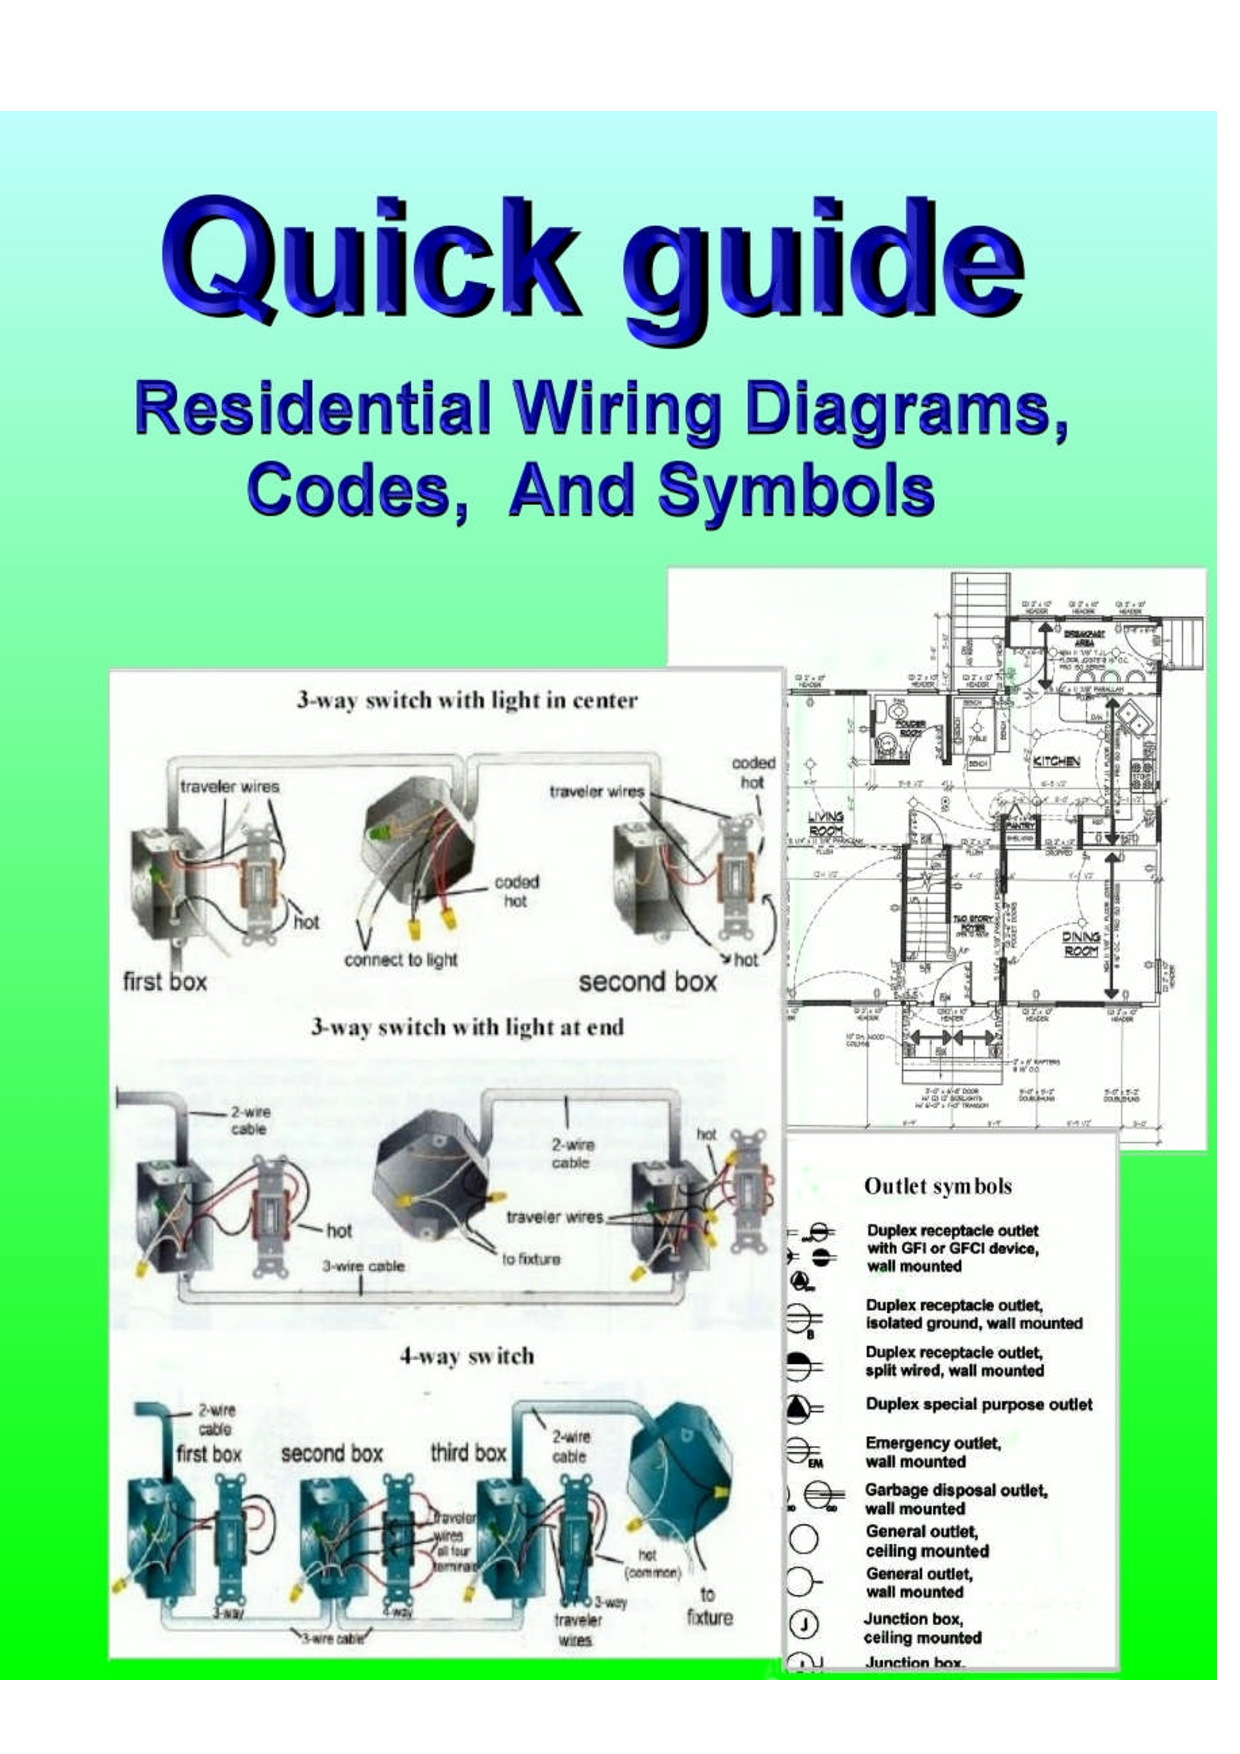 home electrical wiring diagrams the following link for home electrical wiring diagrams even arthur s eyes glaze over at this quick guide yet arthur loves the idea of a quick guide to diagrams codes